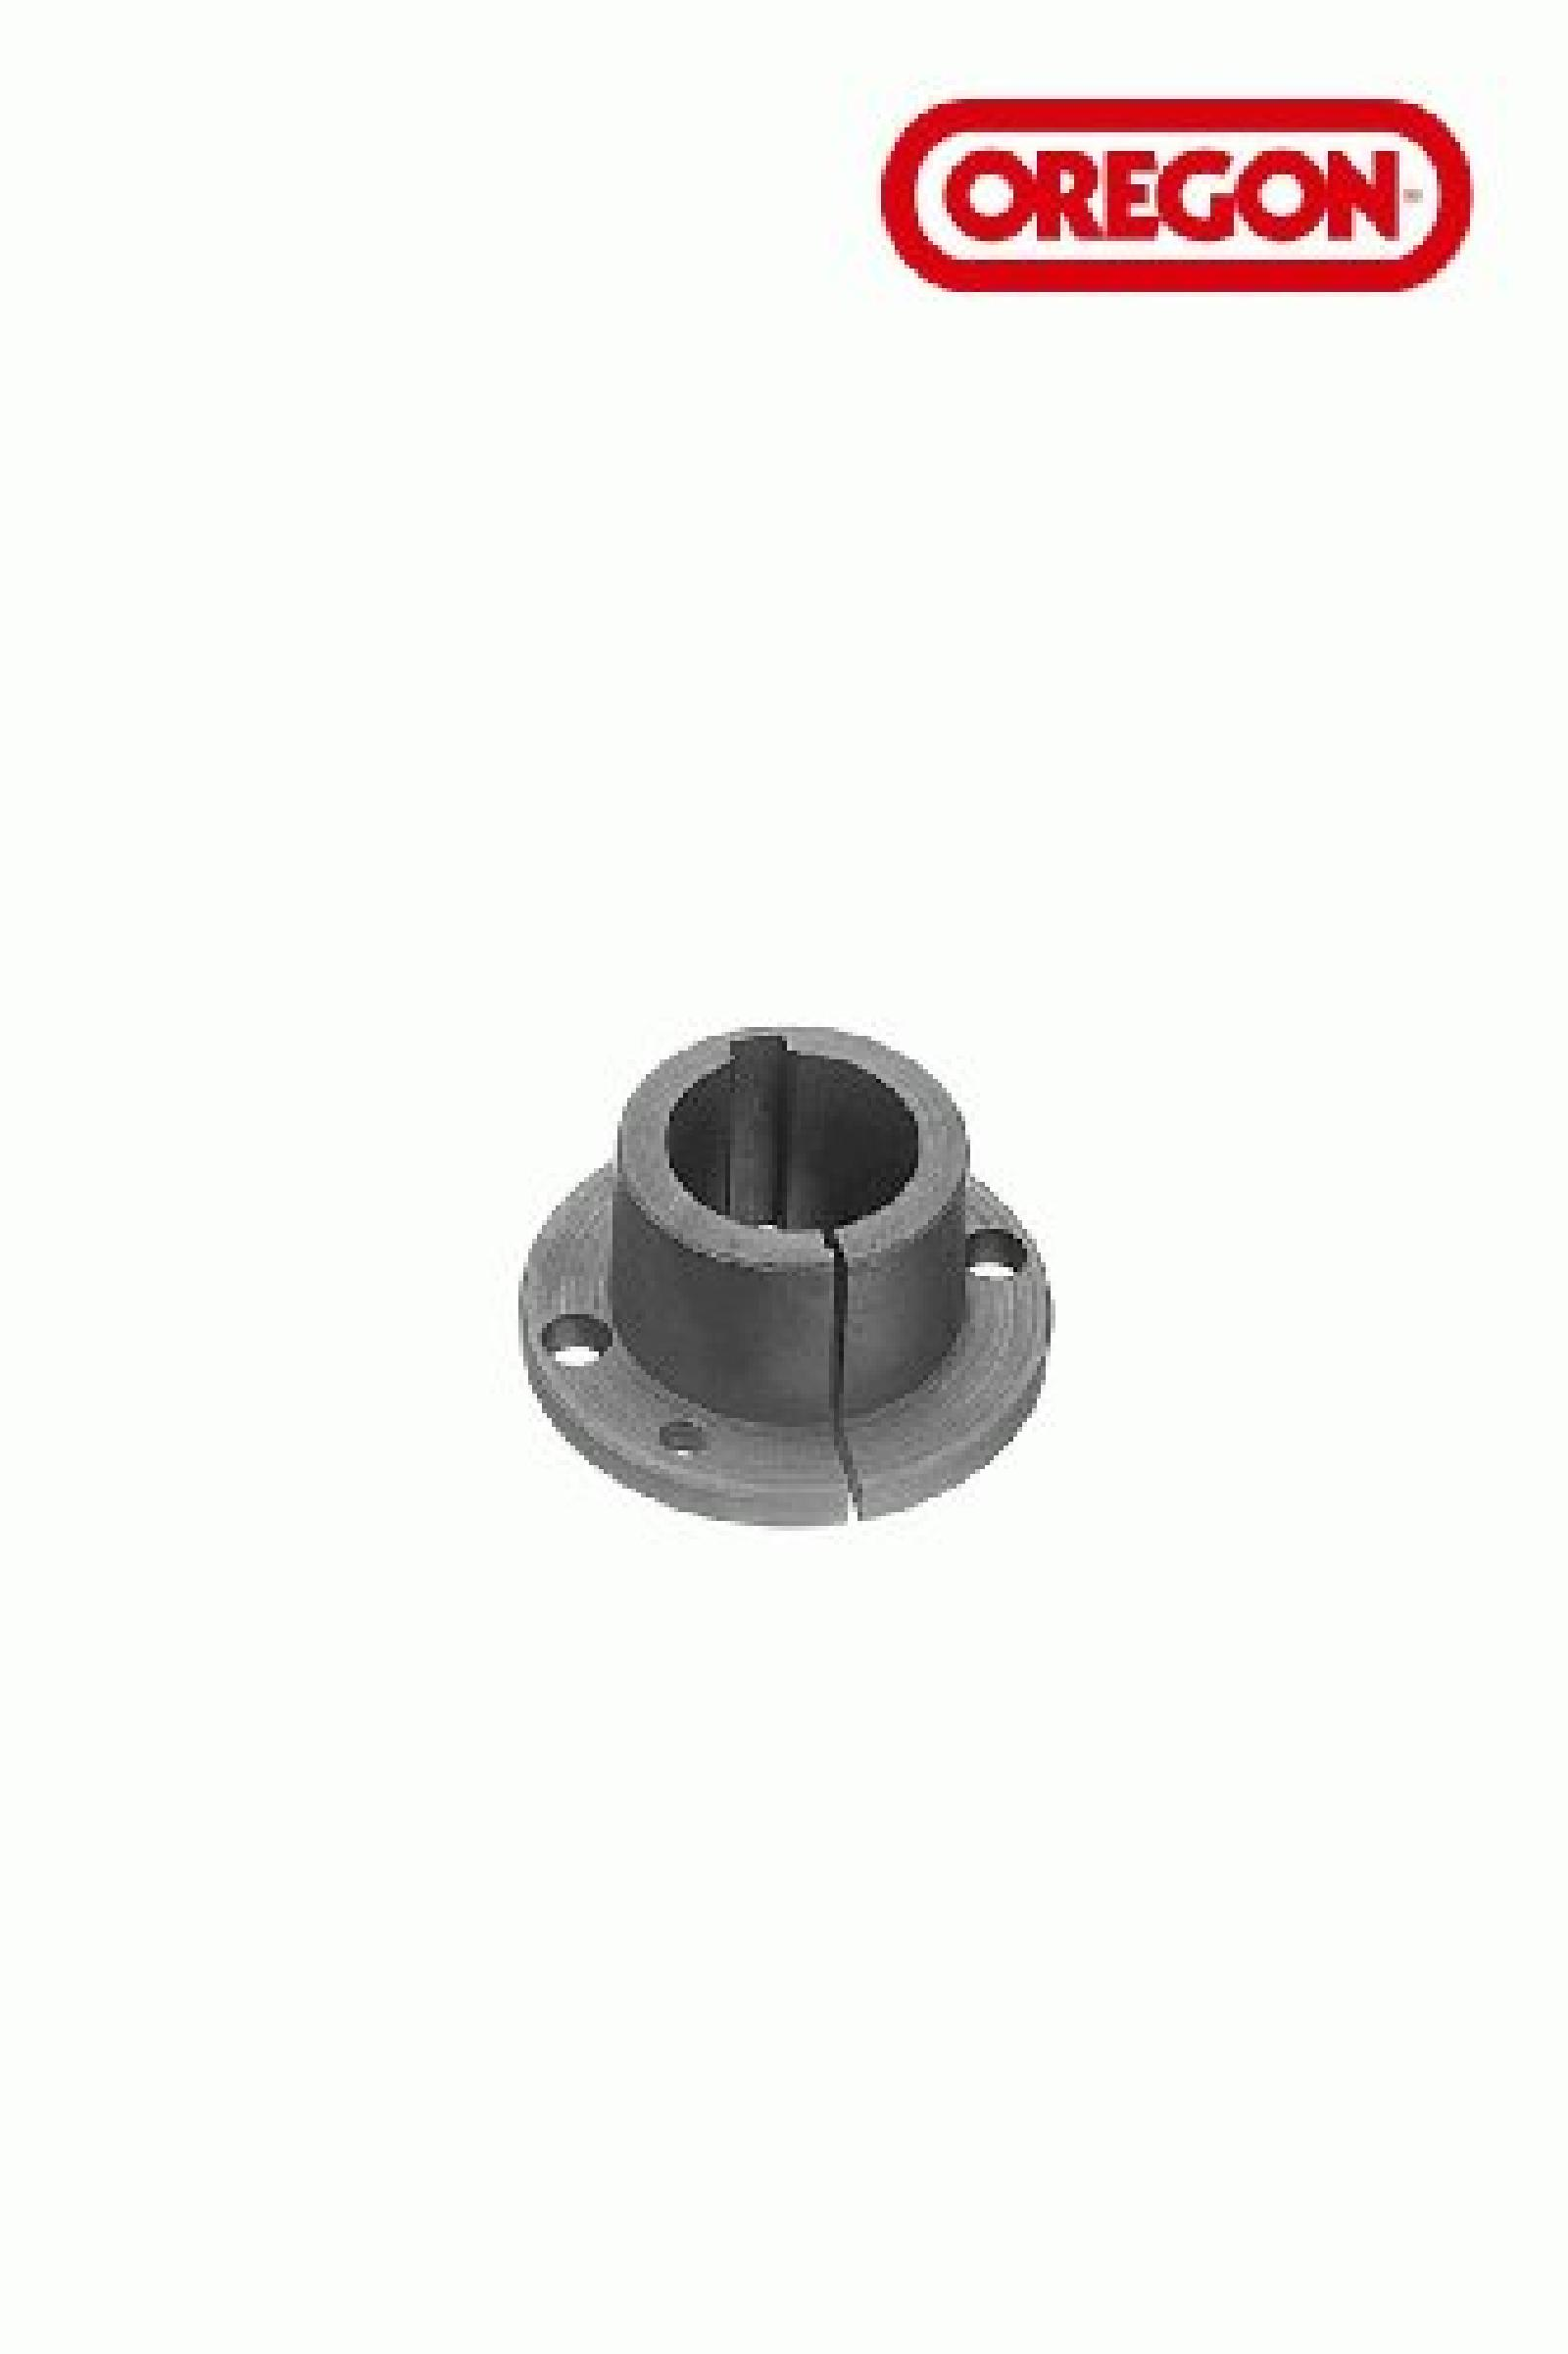 BUSHING FOR TAPERED PULLE part# 78-003 by Oregon